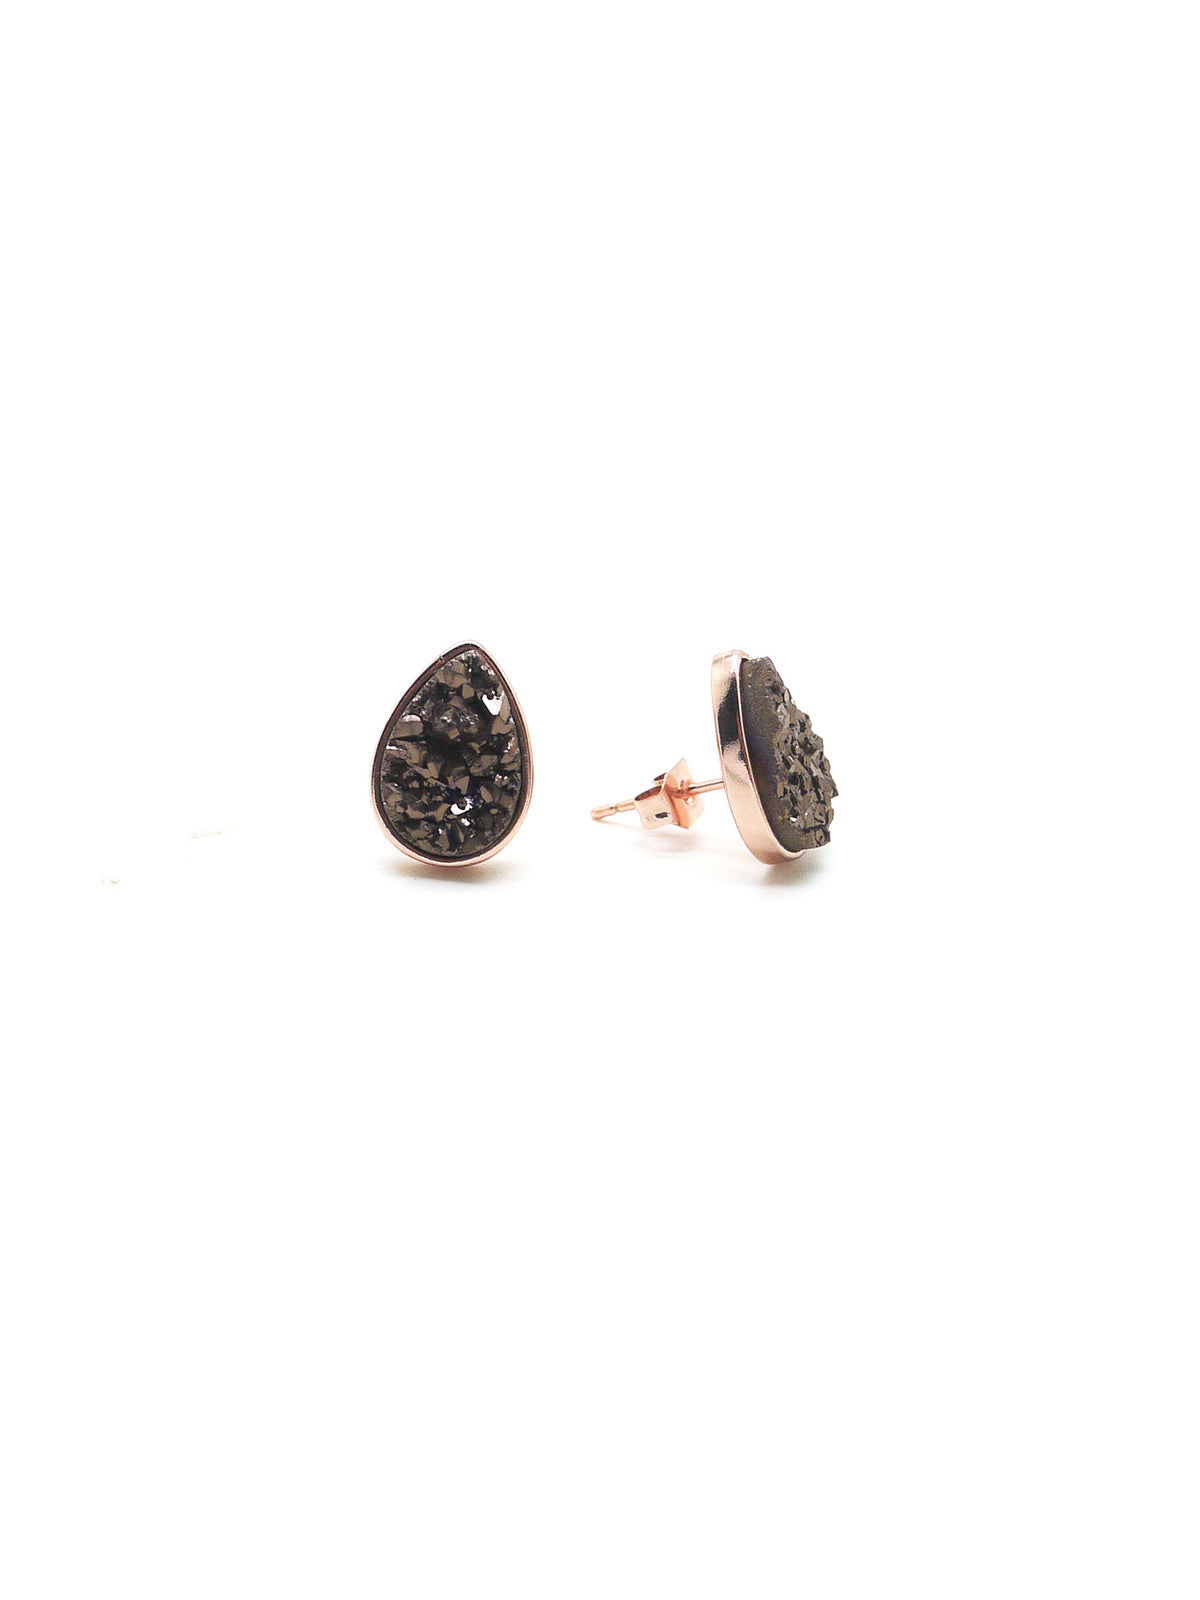 Druzy Studs (teardrop) - rose gold - bronze